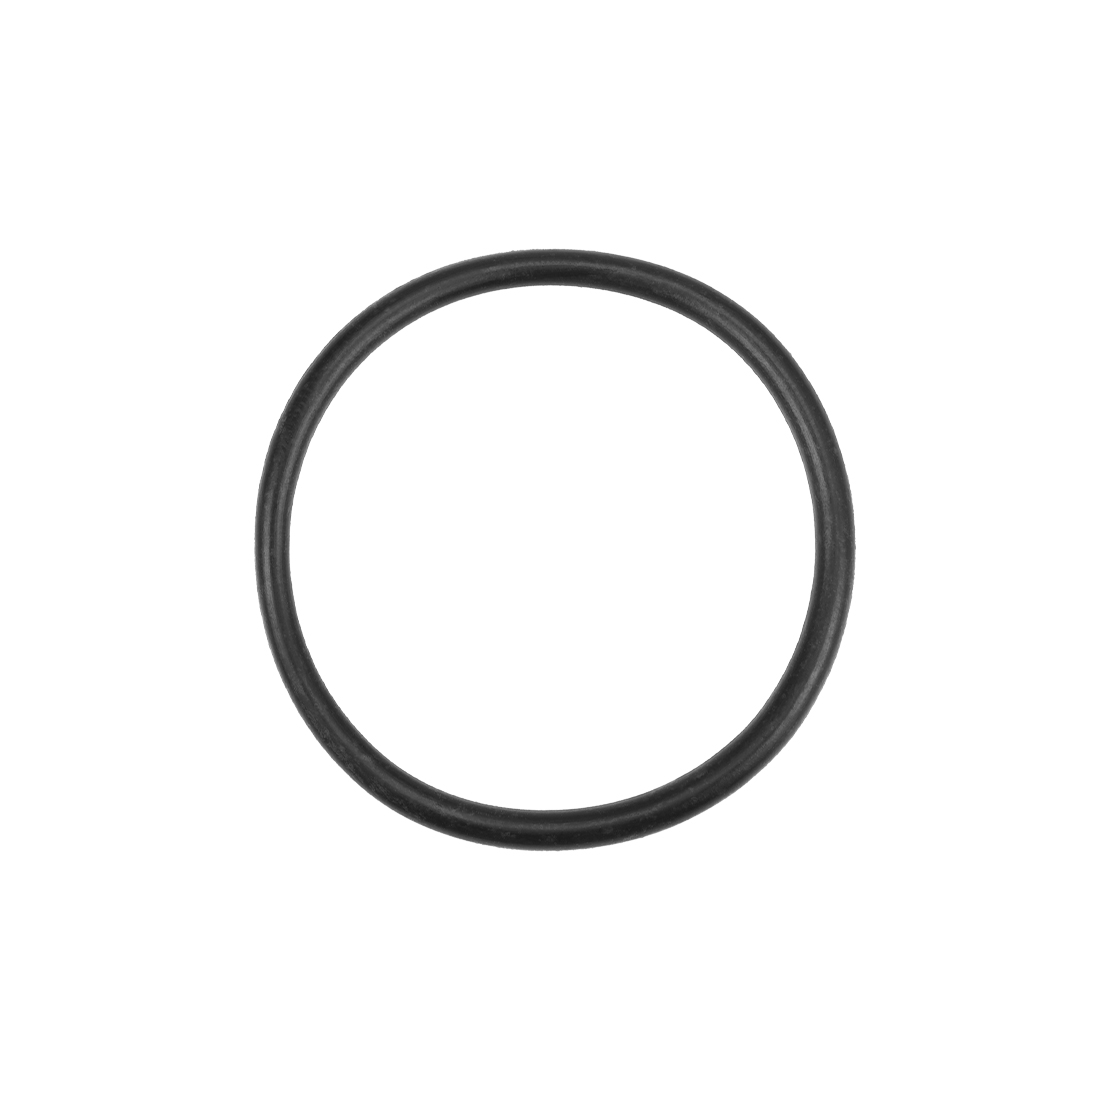 O-Rings Nitrile Rubber 34.5mm x 39.8mm x 2.65mm Round Seal Gasket